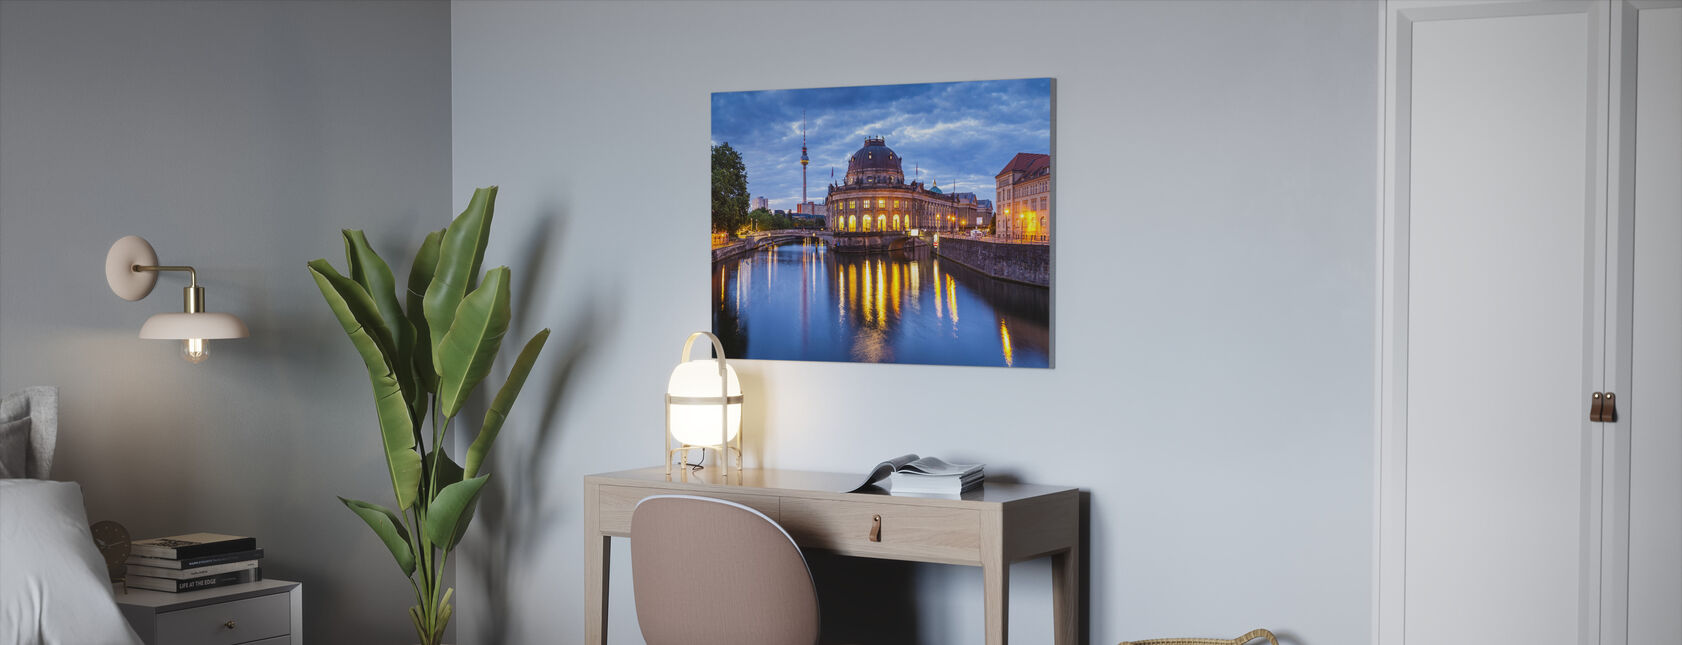 Bode Museum - Canvas print - Office